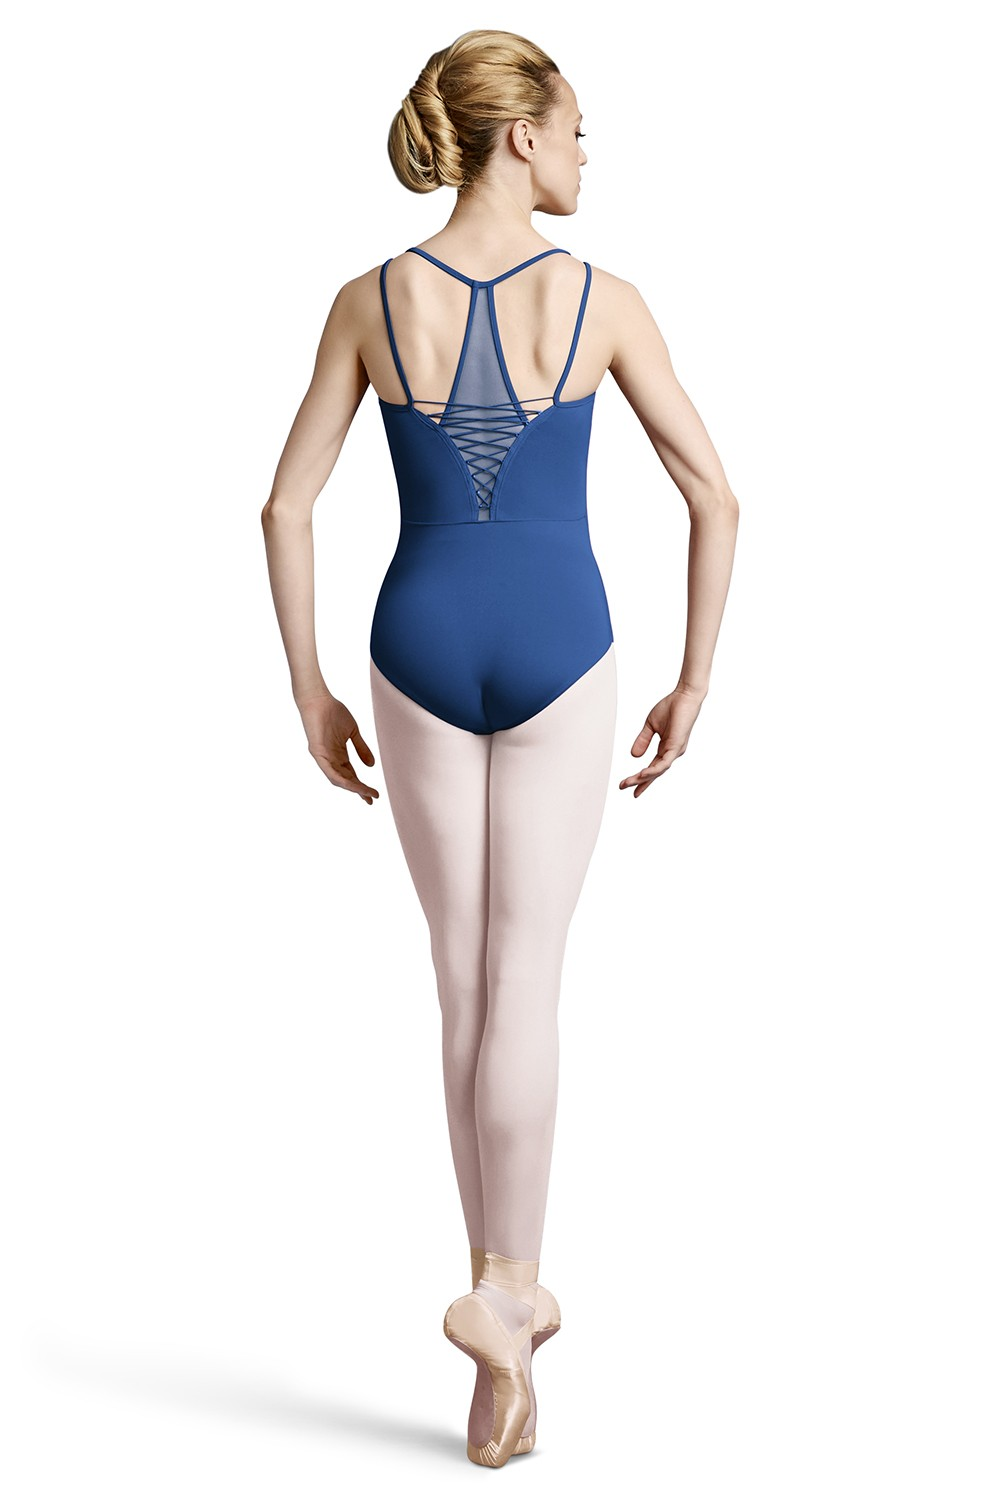 Clidna Tween Dance Leotards